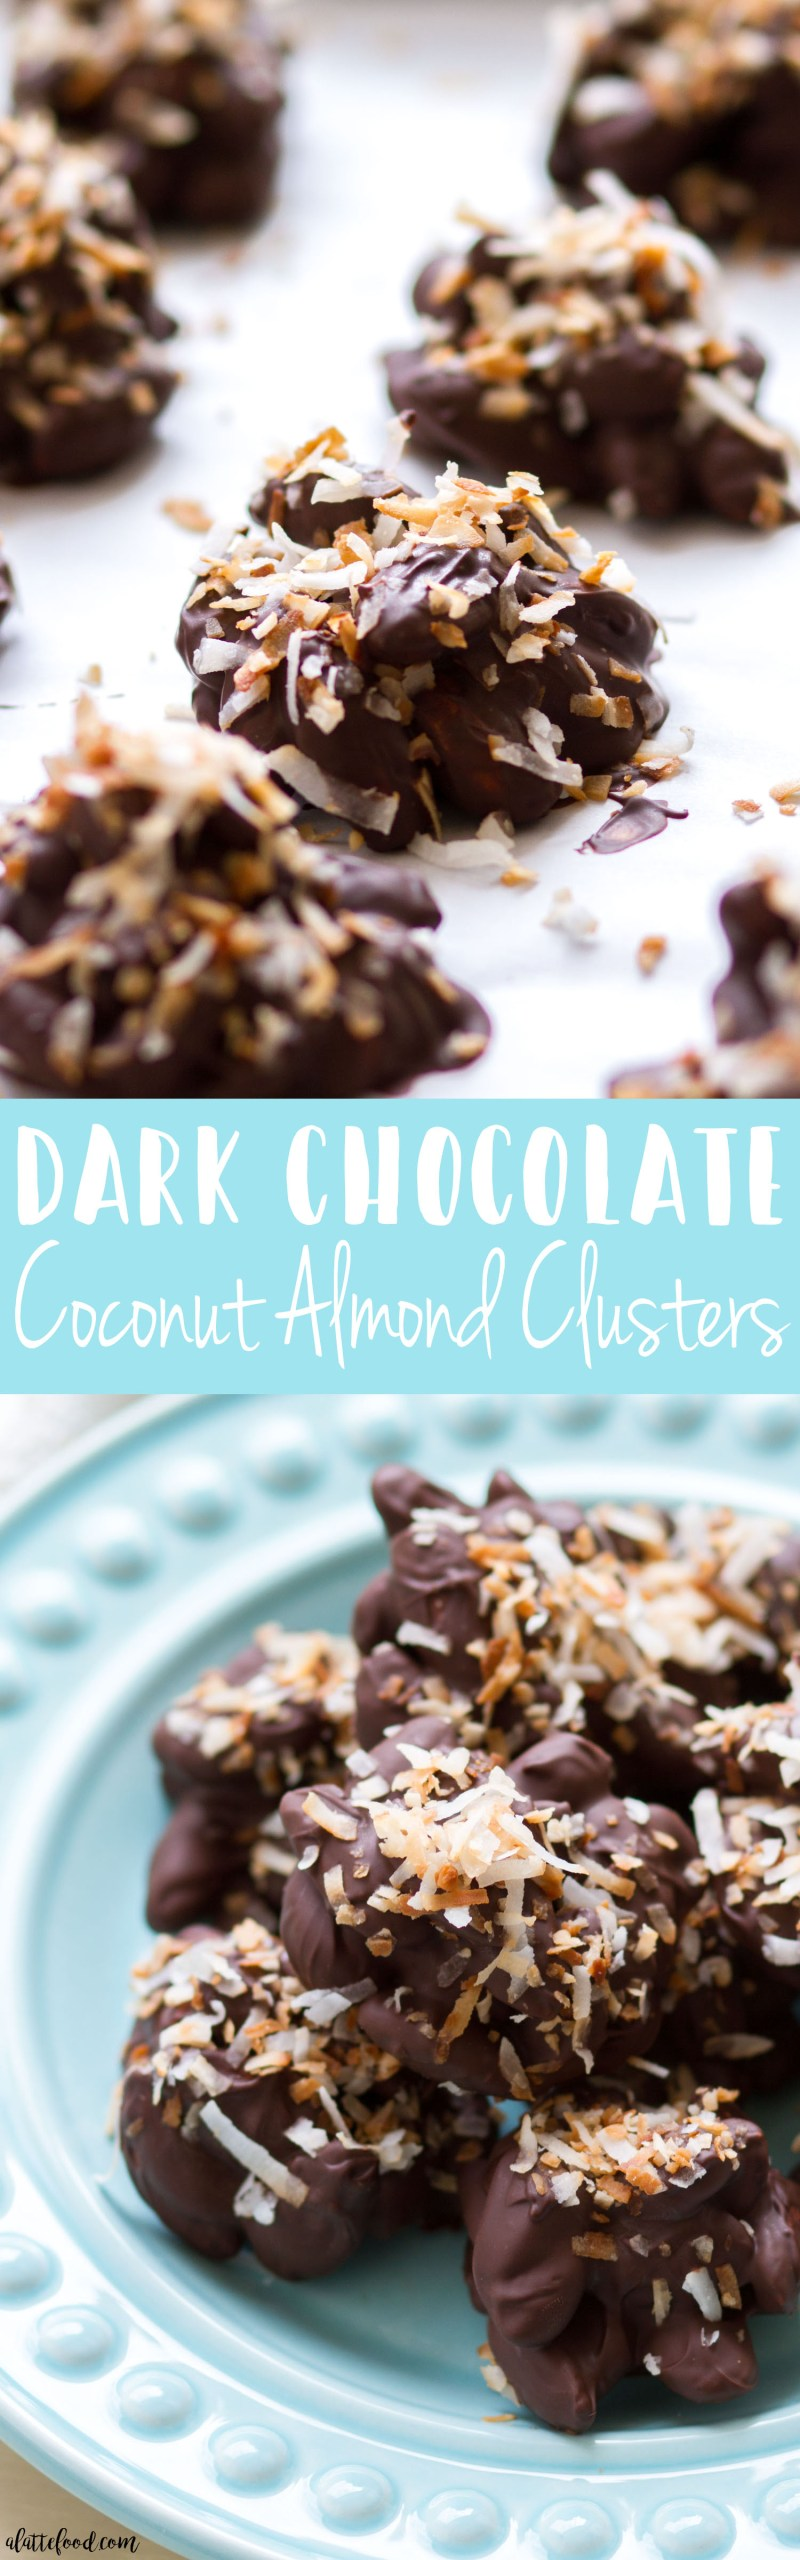 These homemade chocolate almond clusters are made with melted dark chocolate and toasted coconut to make an irresistible quick and easy snack or sweet treat! These Dark Chocolate Coconut Almond Clusters are super simple to make (as you can see in a step-by-step video below), and a total crowd pleaser! coconut, almond clusters, chocolate covered almonds